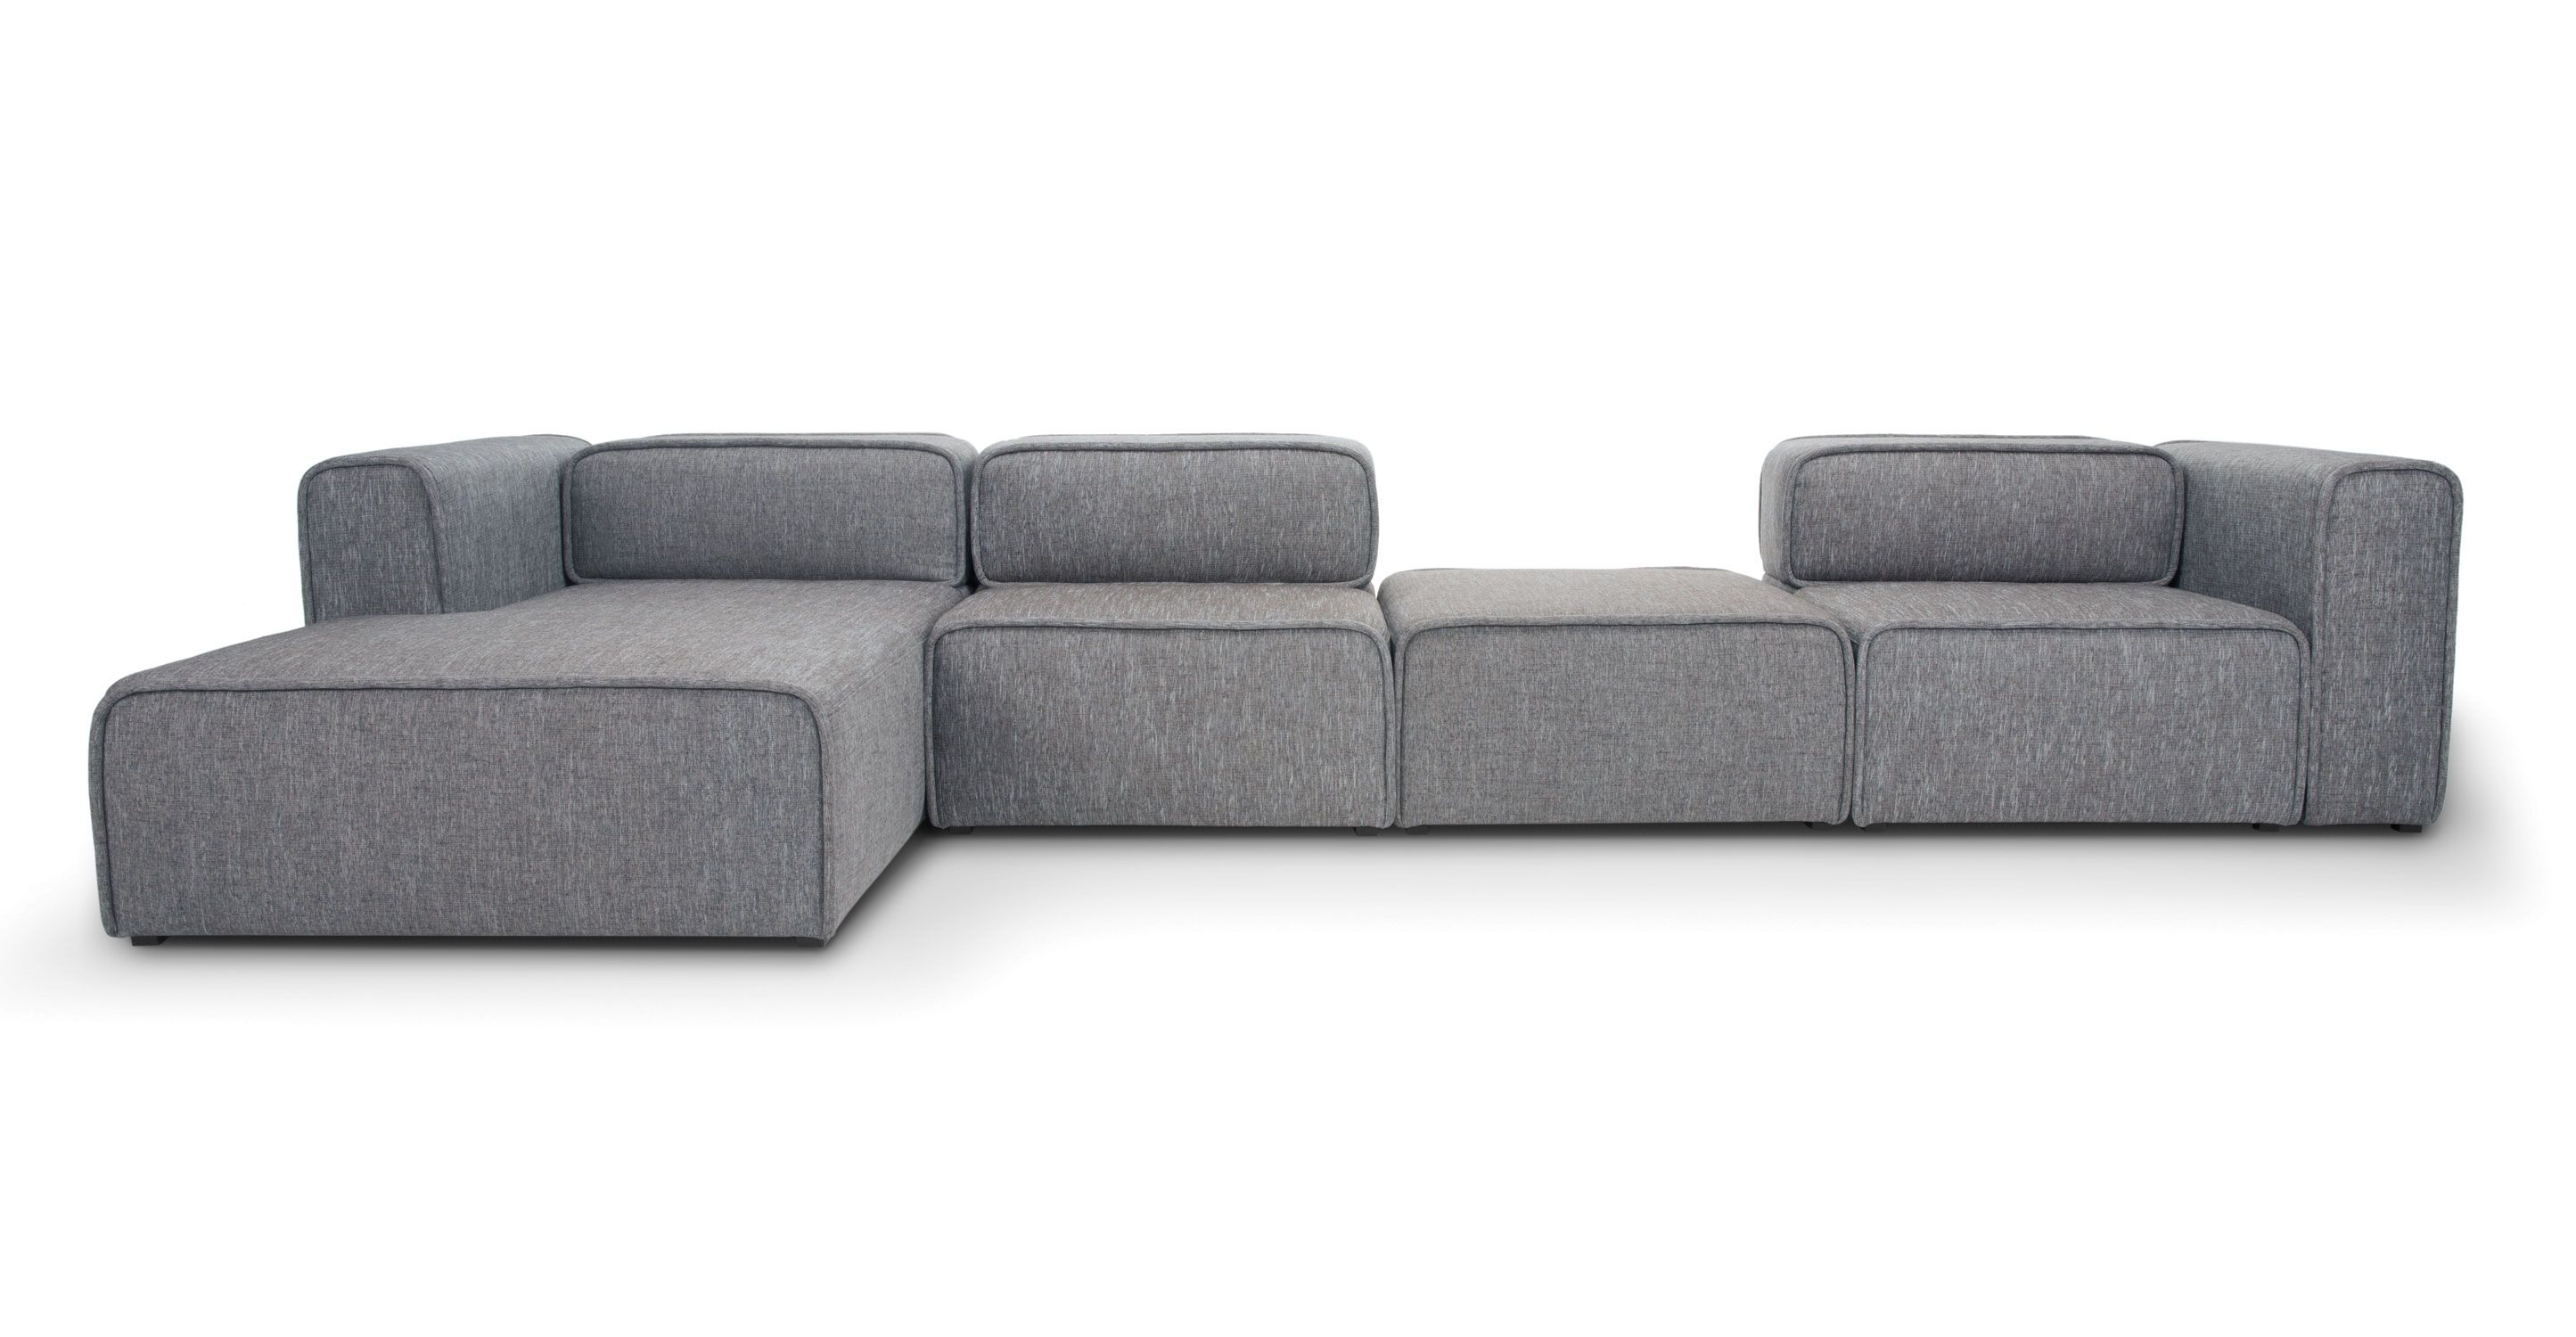 Acura 3 Seat Left Sectional With Chaise